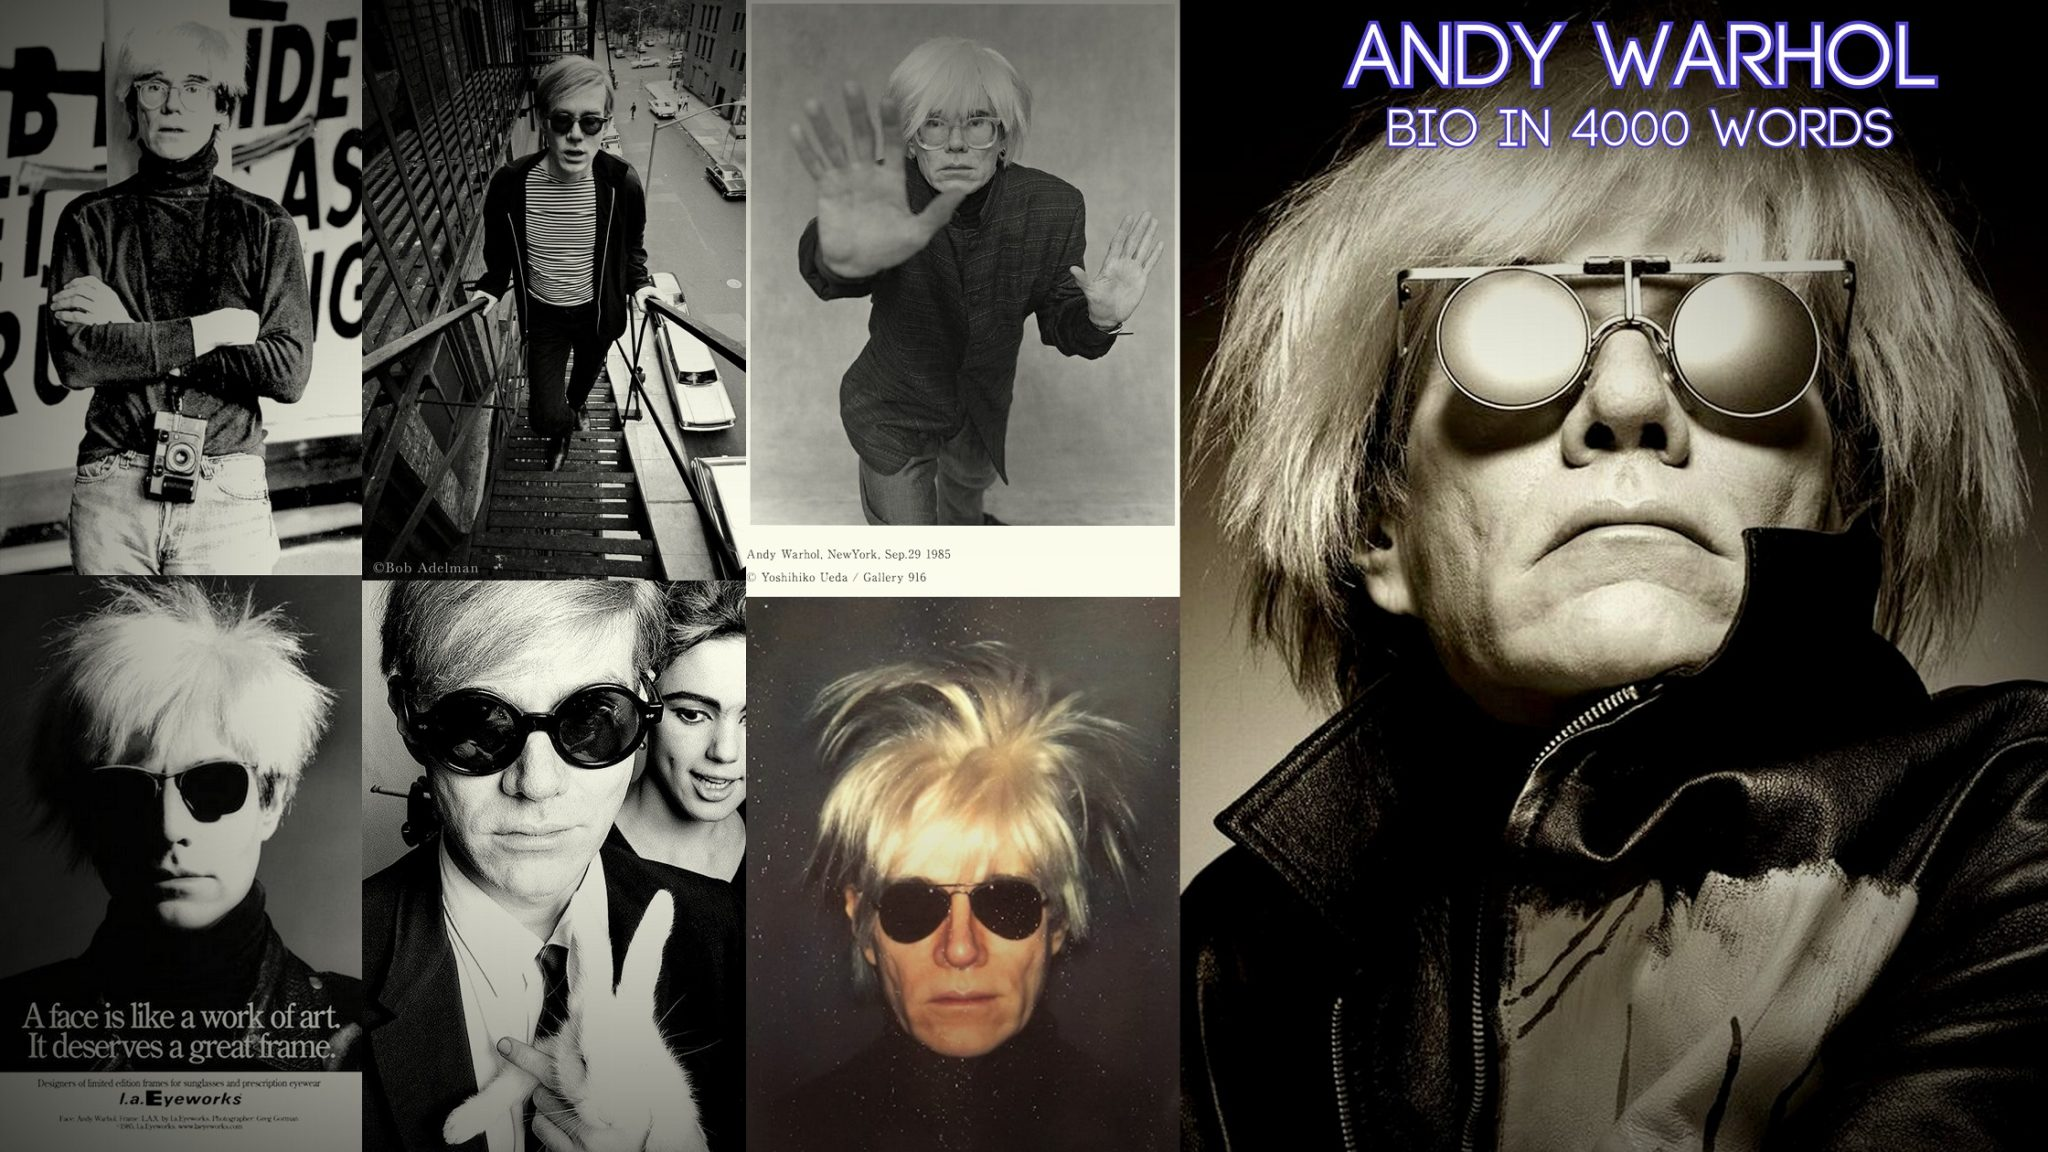 Andy Warhol- Life, paintings, contribution, death- Easy explanation